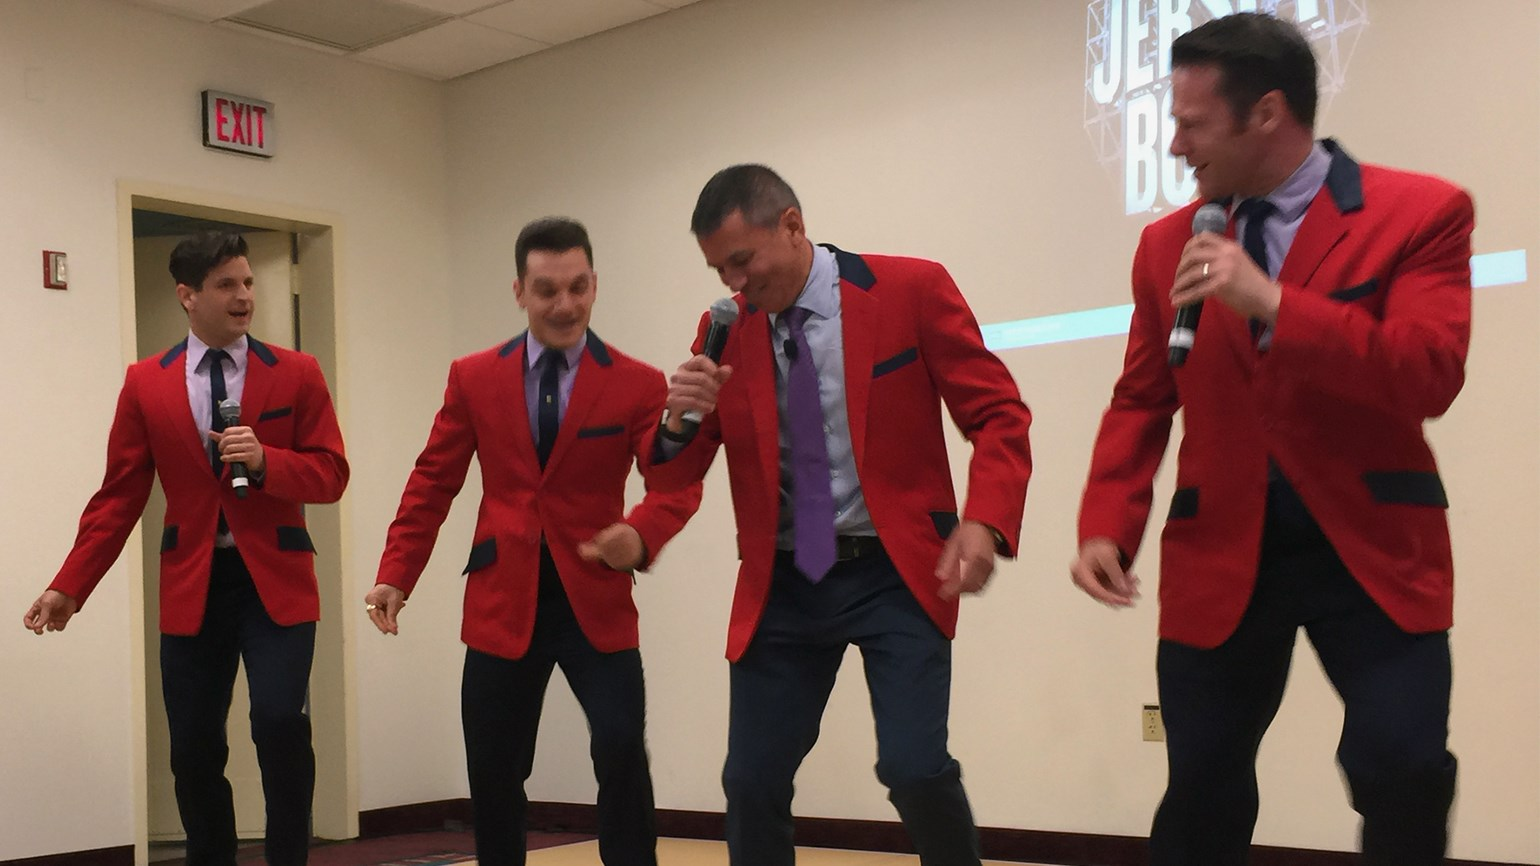 'Jersey Boys' to be featured show on Norwegian Bliss